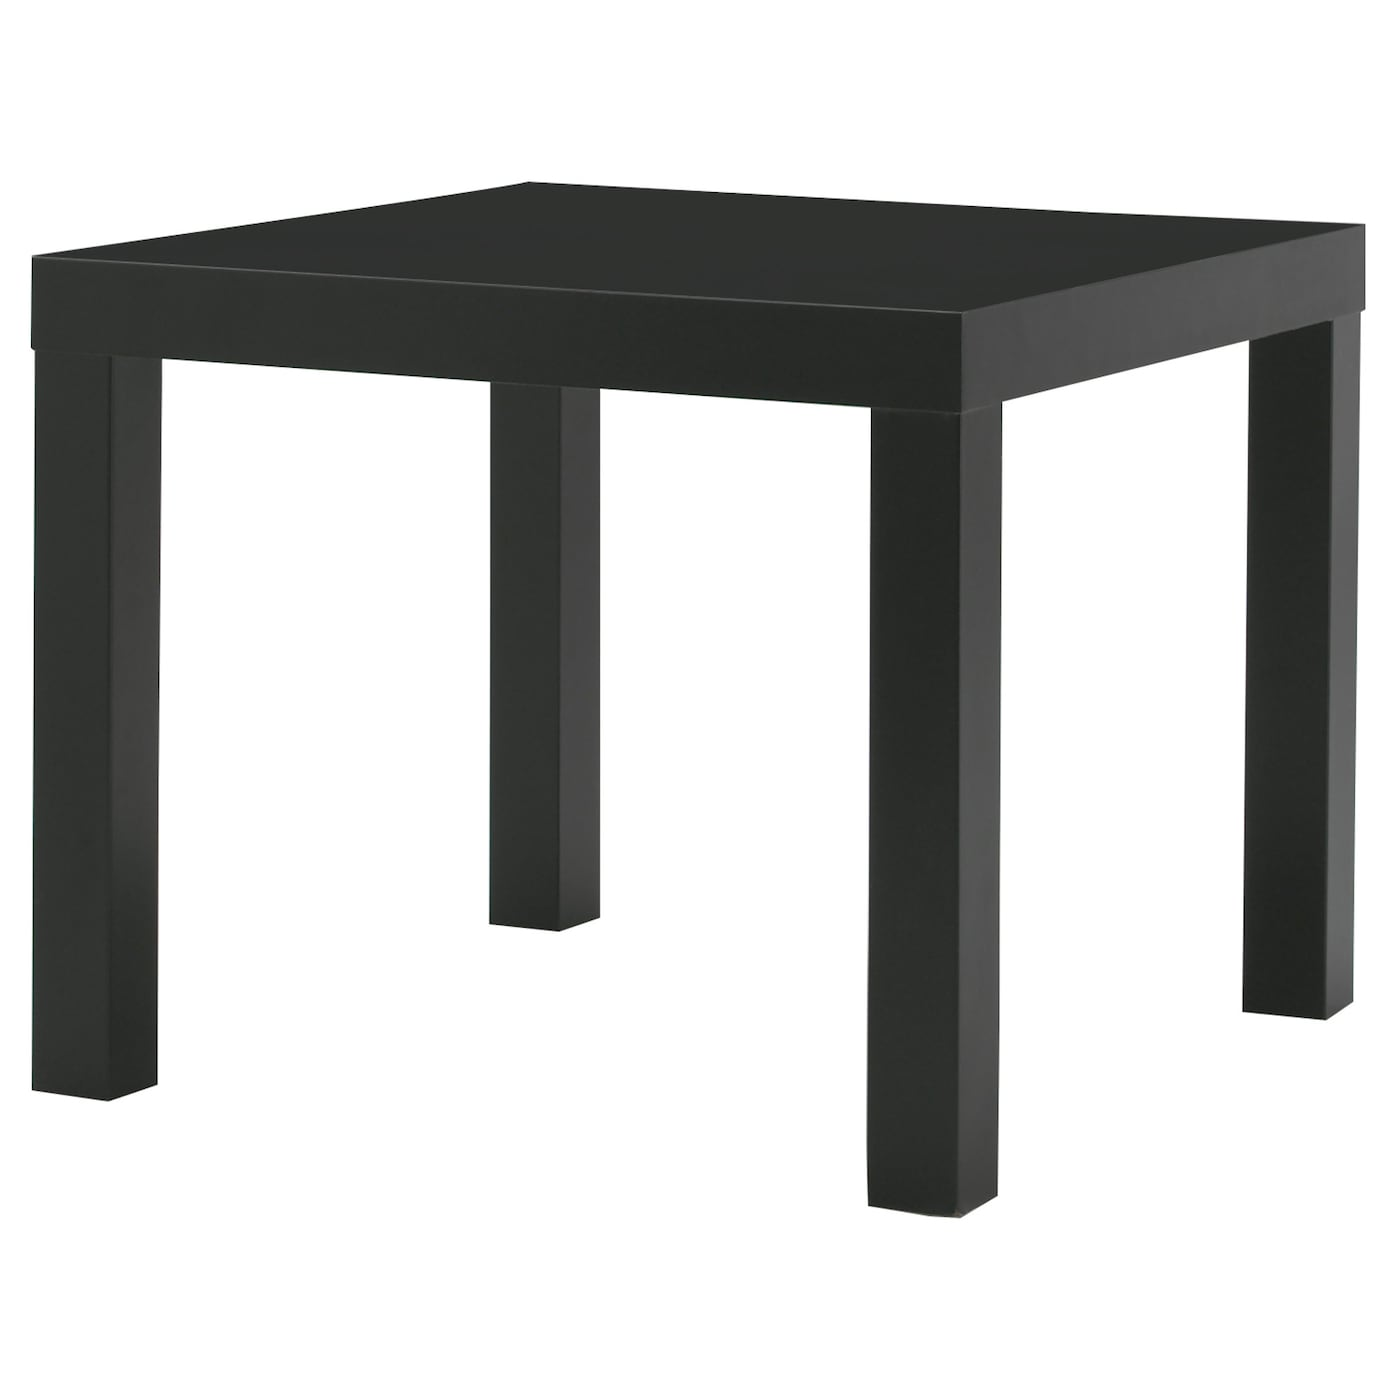 lack table d 39 appoint noir 55 x 55 cm ikea. Black Bedroom Furniture Sets. Home Design Ideas